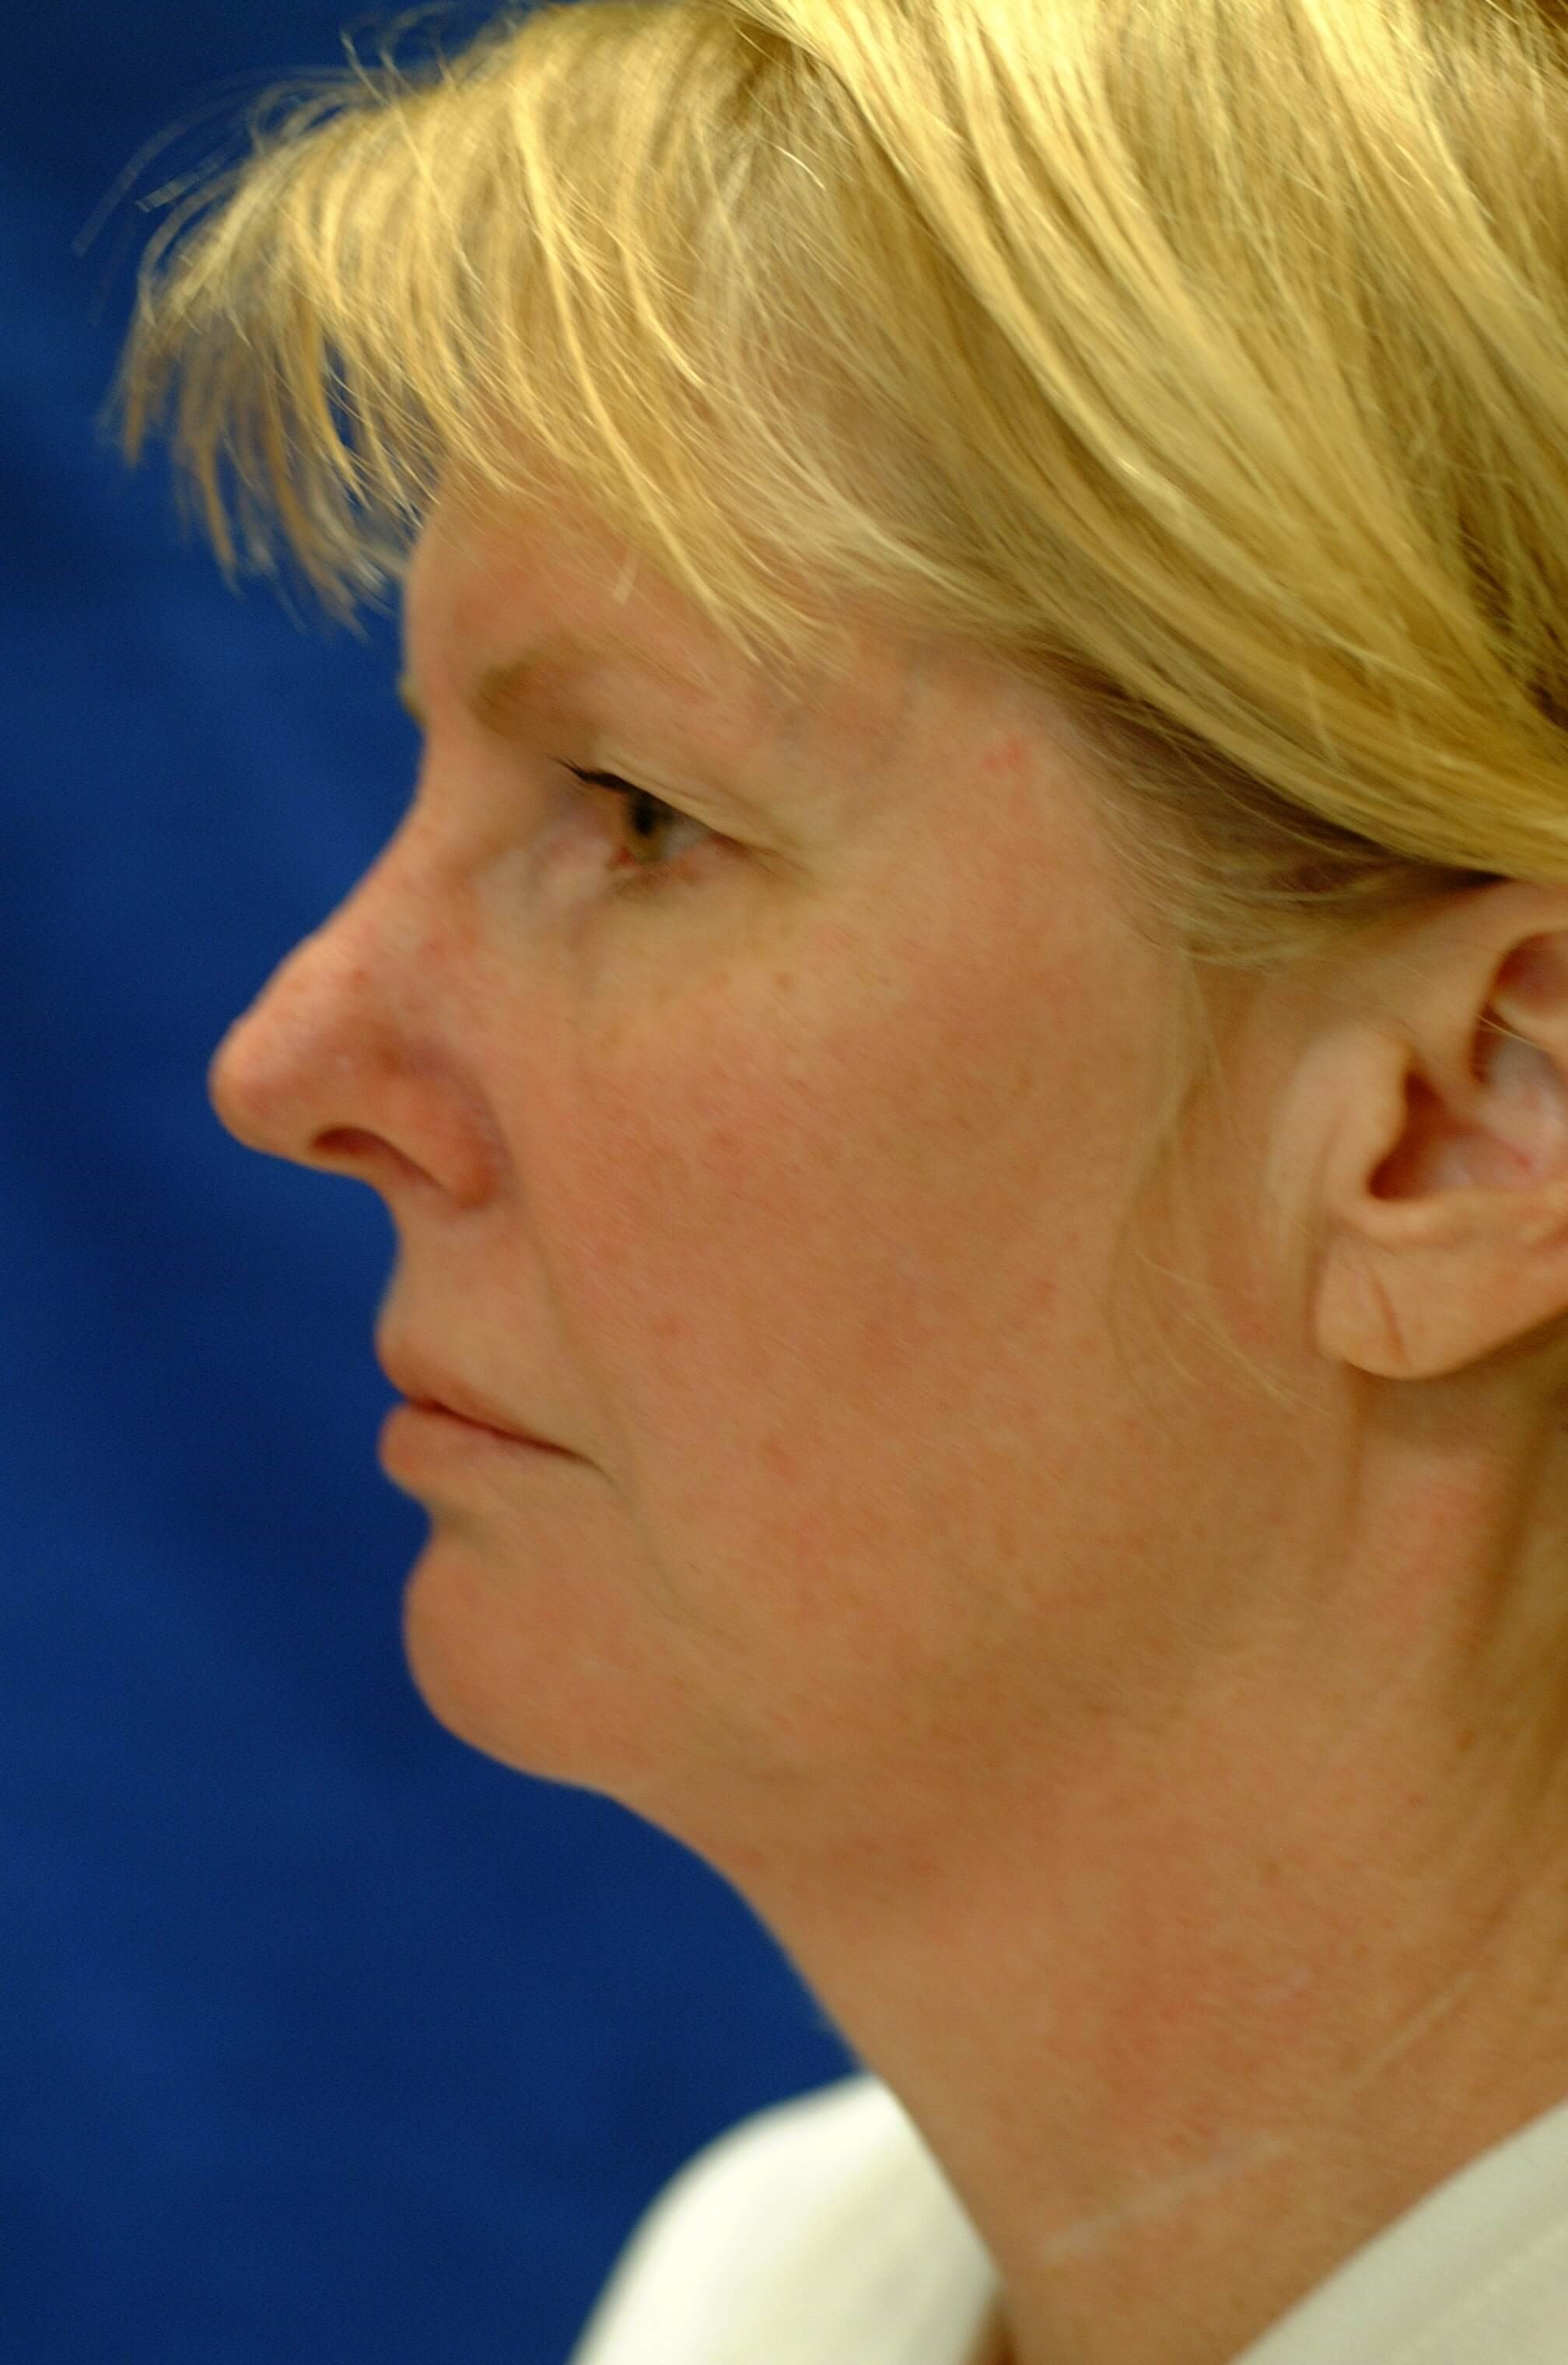 Newport Facelift/Rhinoplasty Side View Before